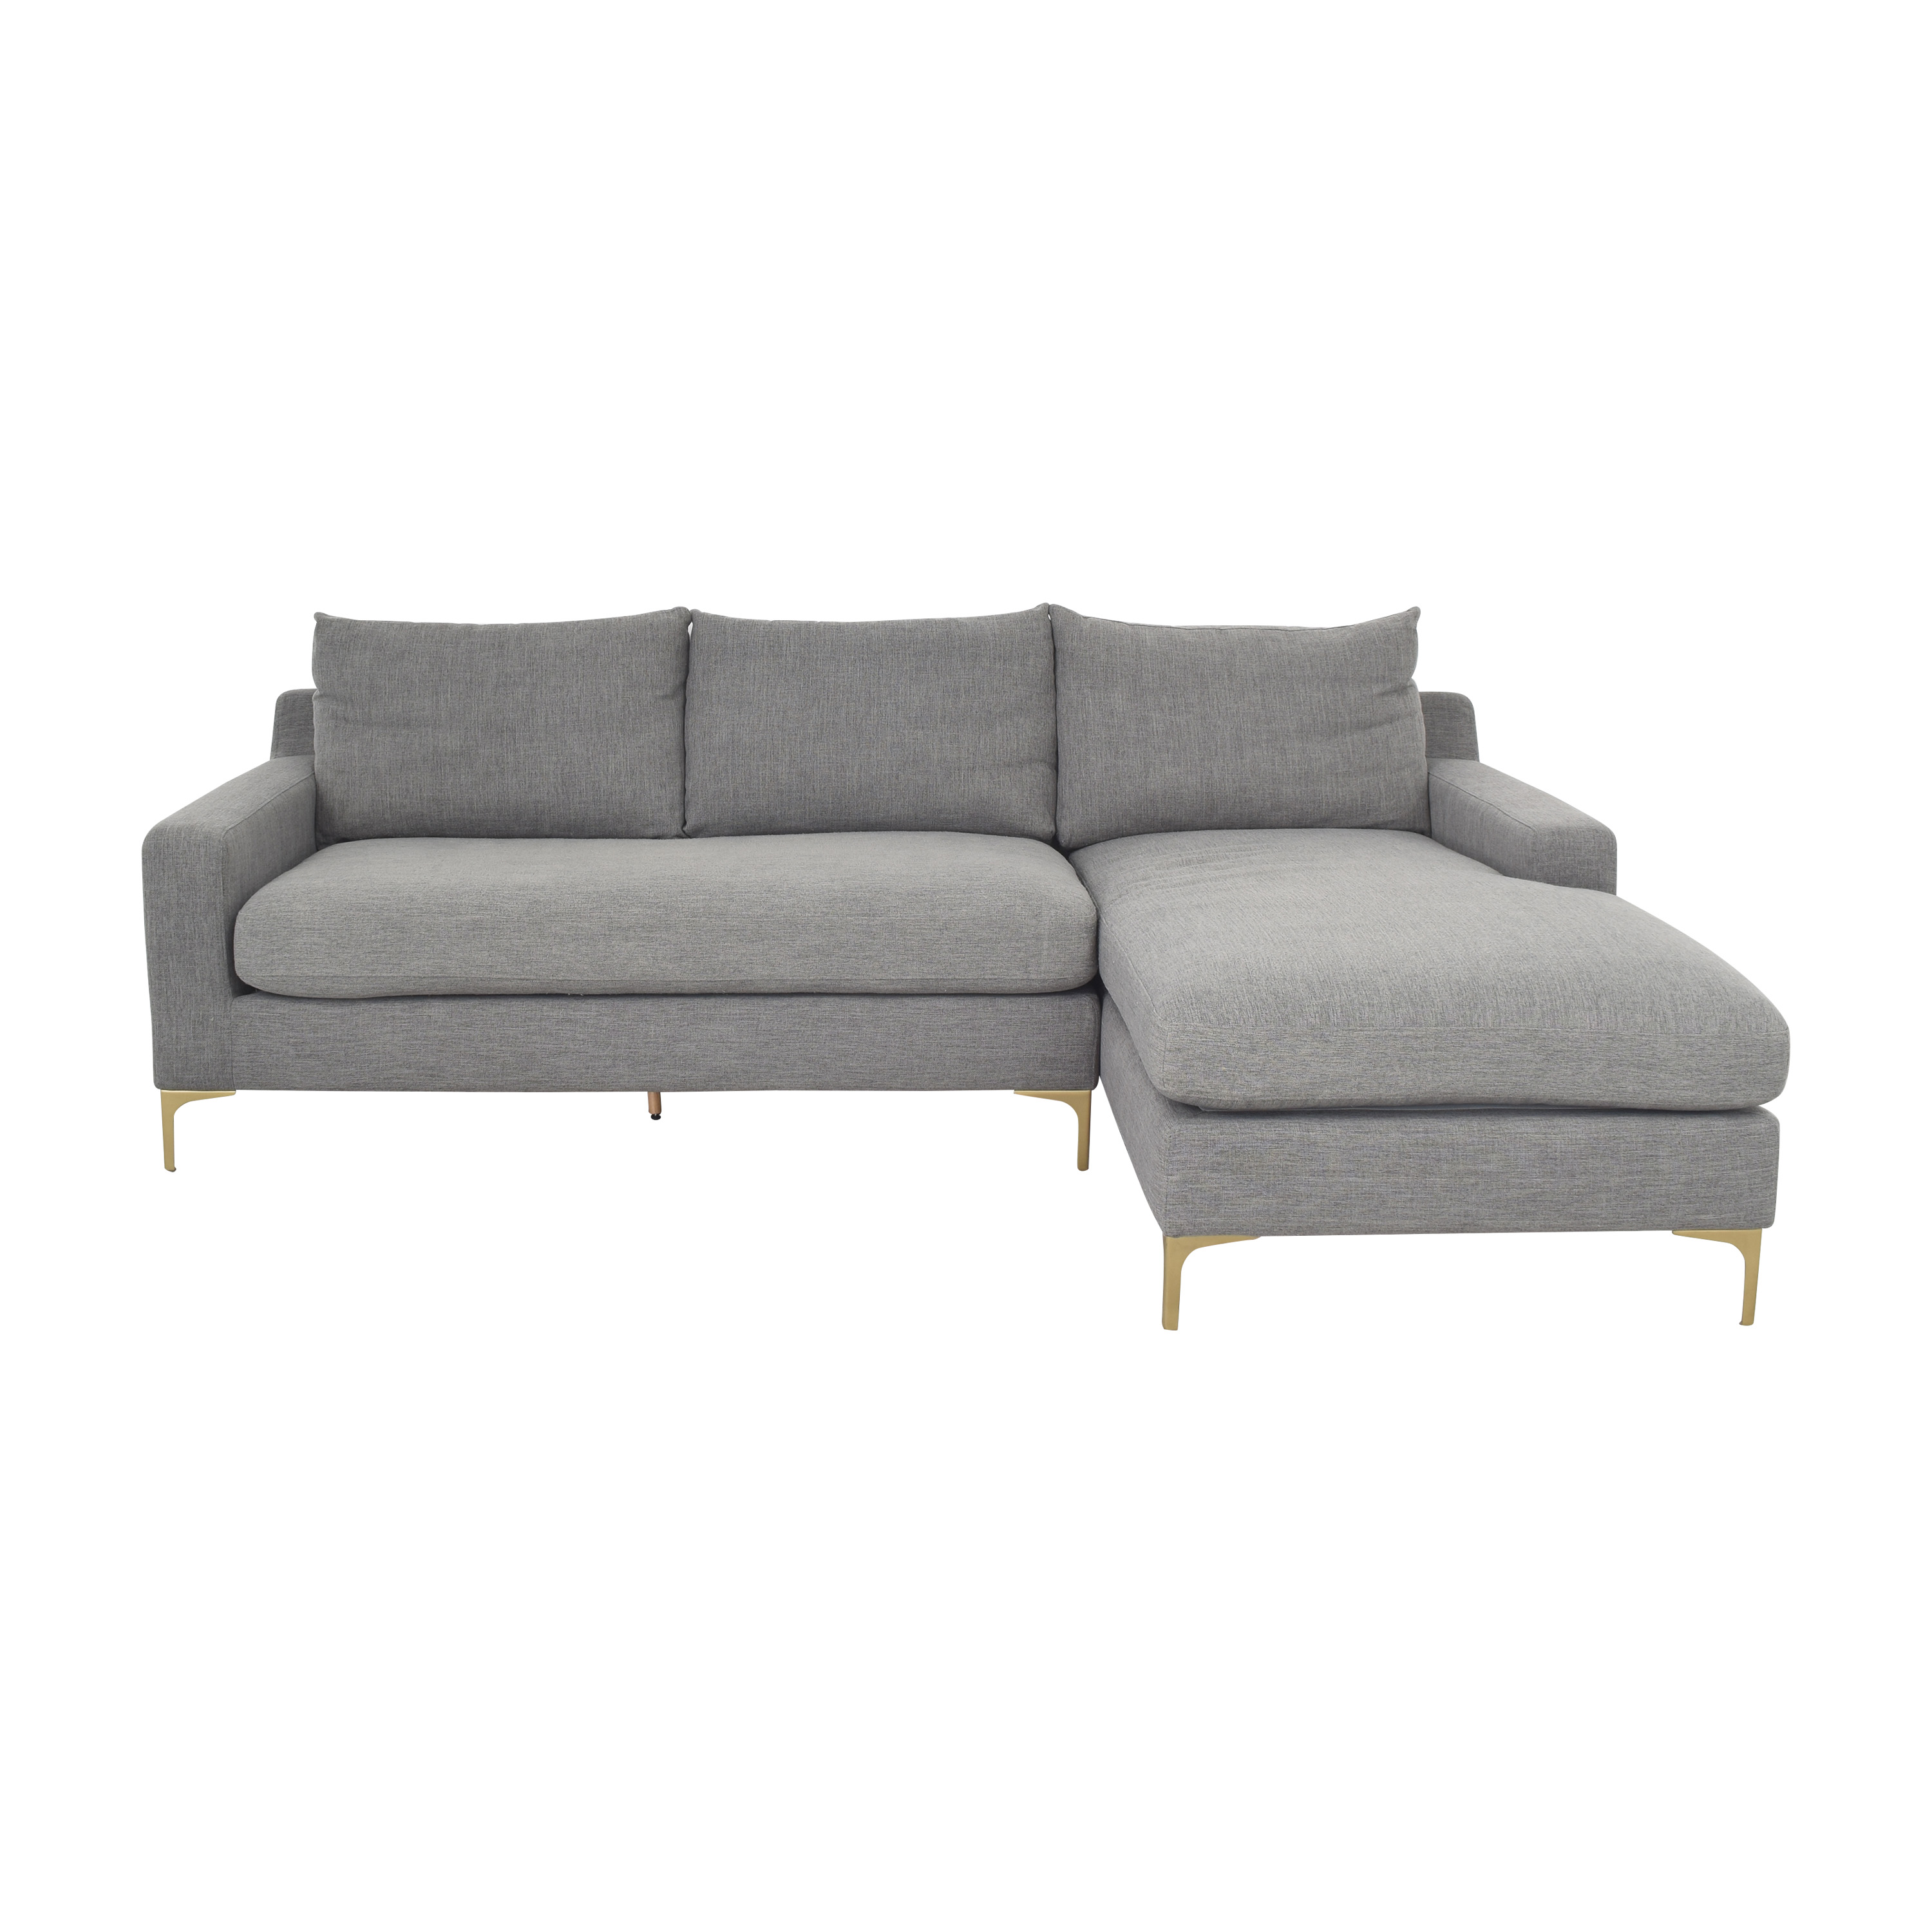 shop Interior Define Sloan Sectional Sofa with Chaise Interior Define Sectionals